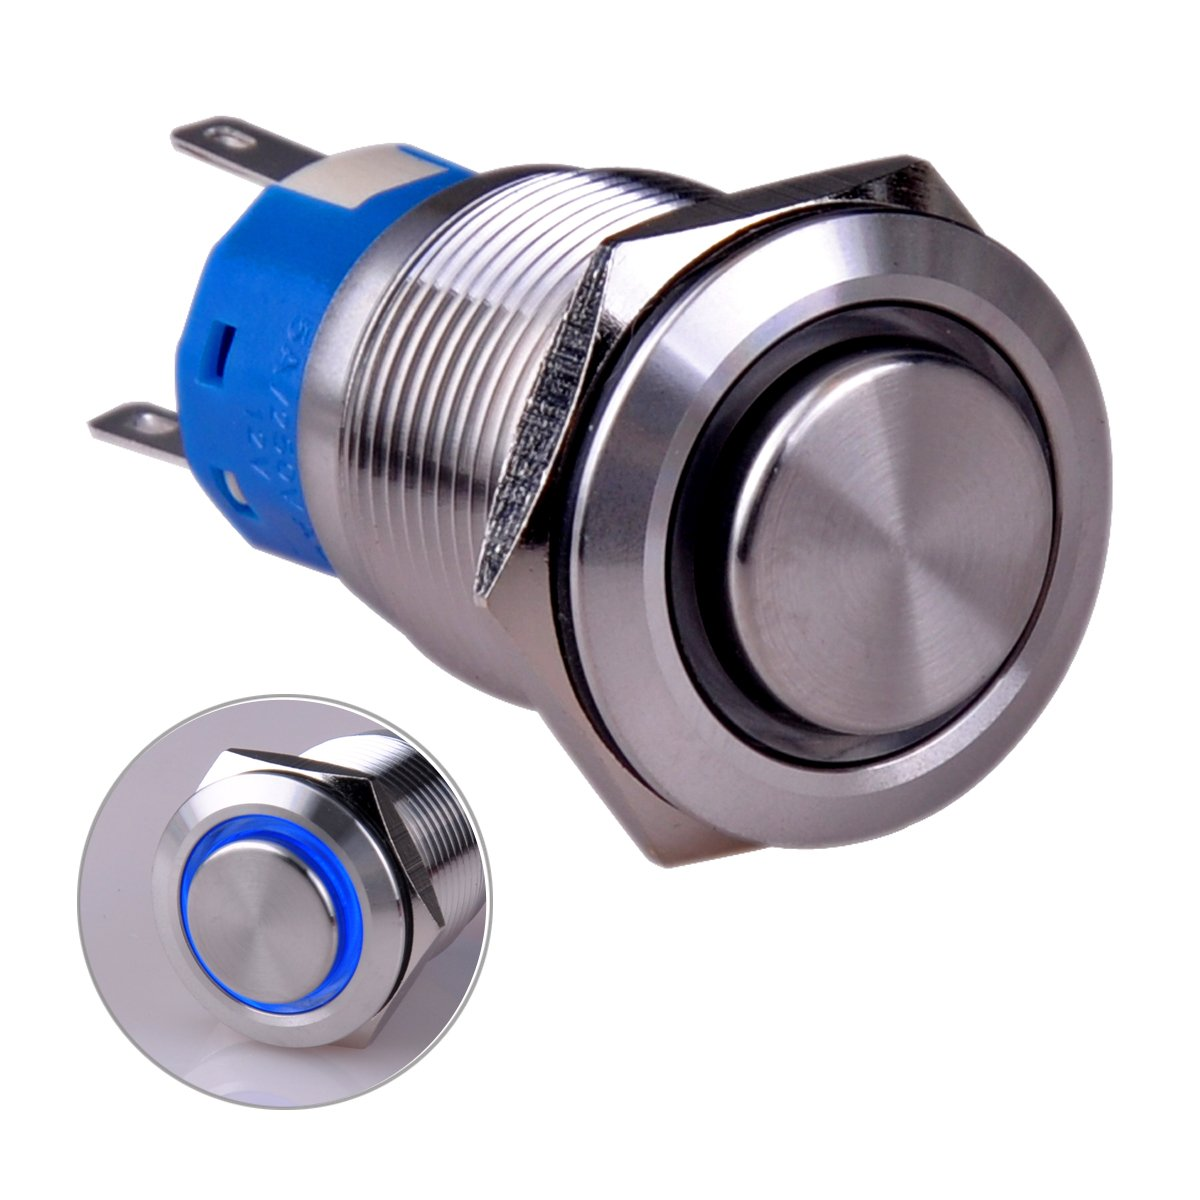 Taien Momentary Push button Switch 19mm 3//4 1NO1NC ON//OFF Silver Stainless Steel Shell with 12V Green LED Light for Car DIY